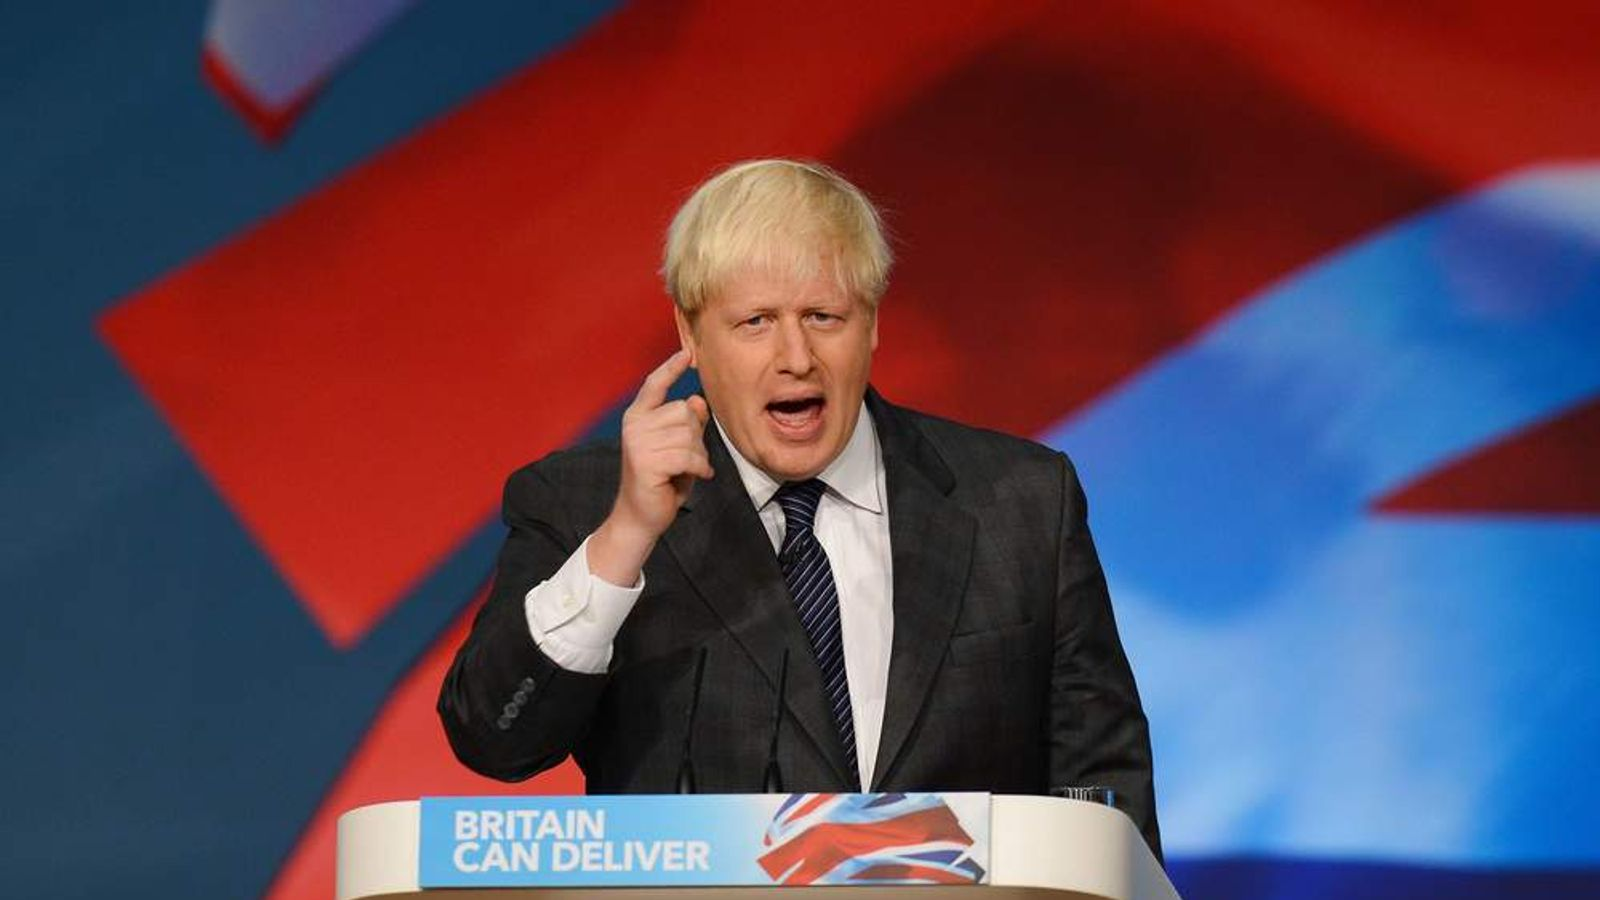 Boris Johnson speaking at Tory party conference